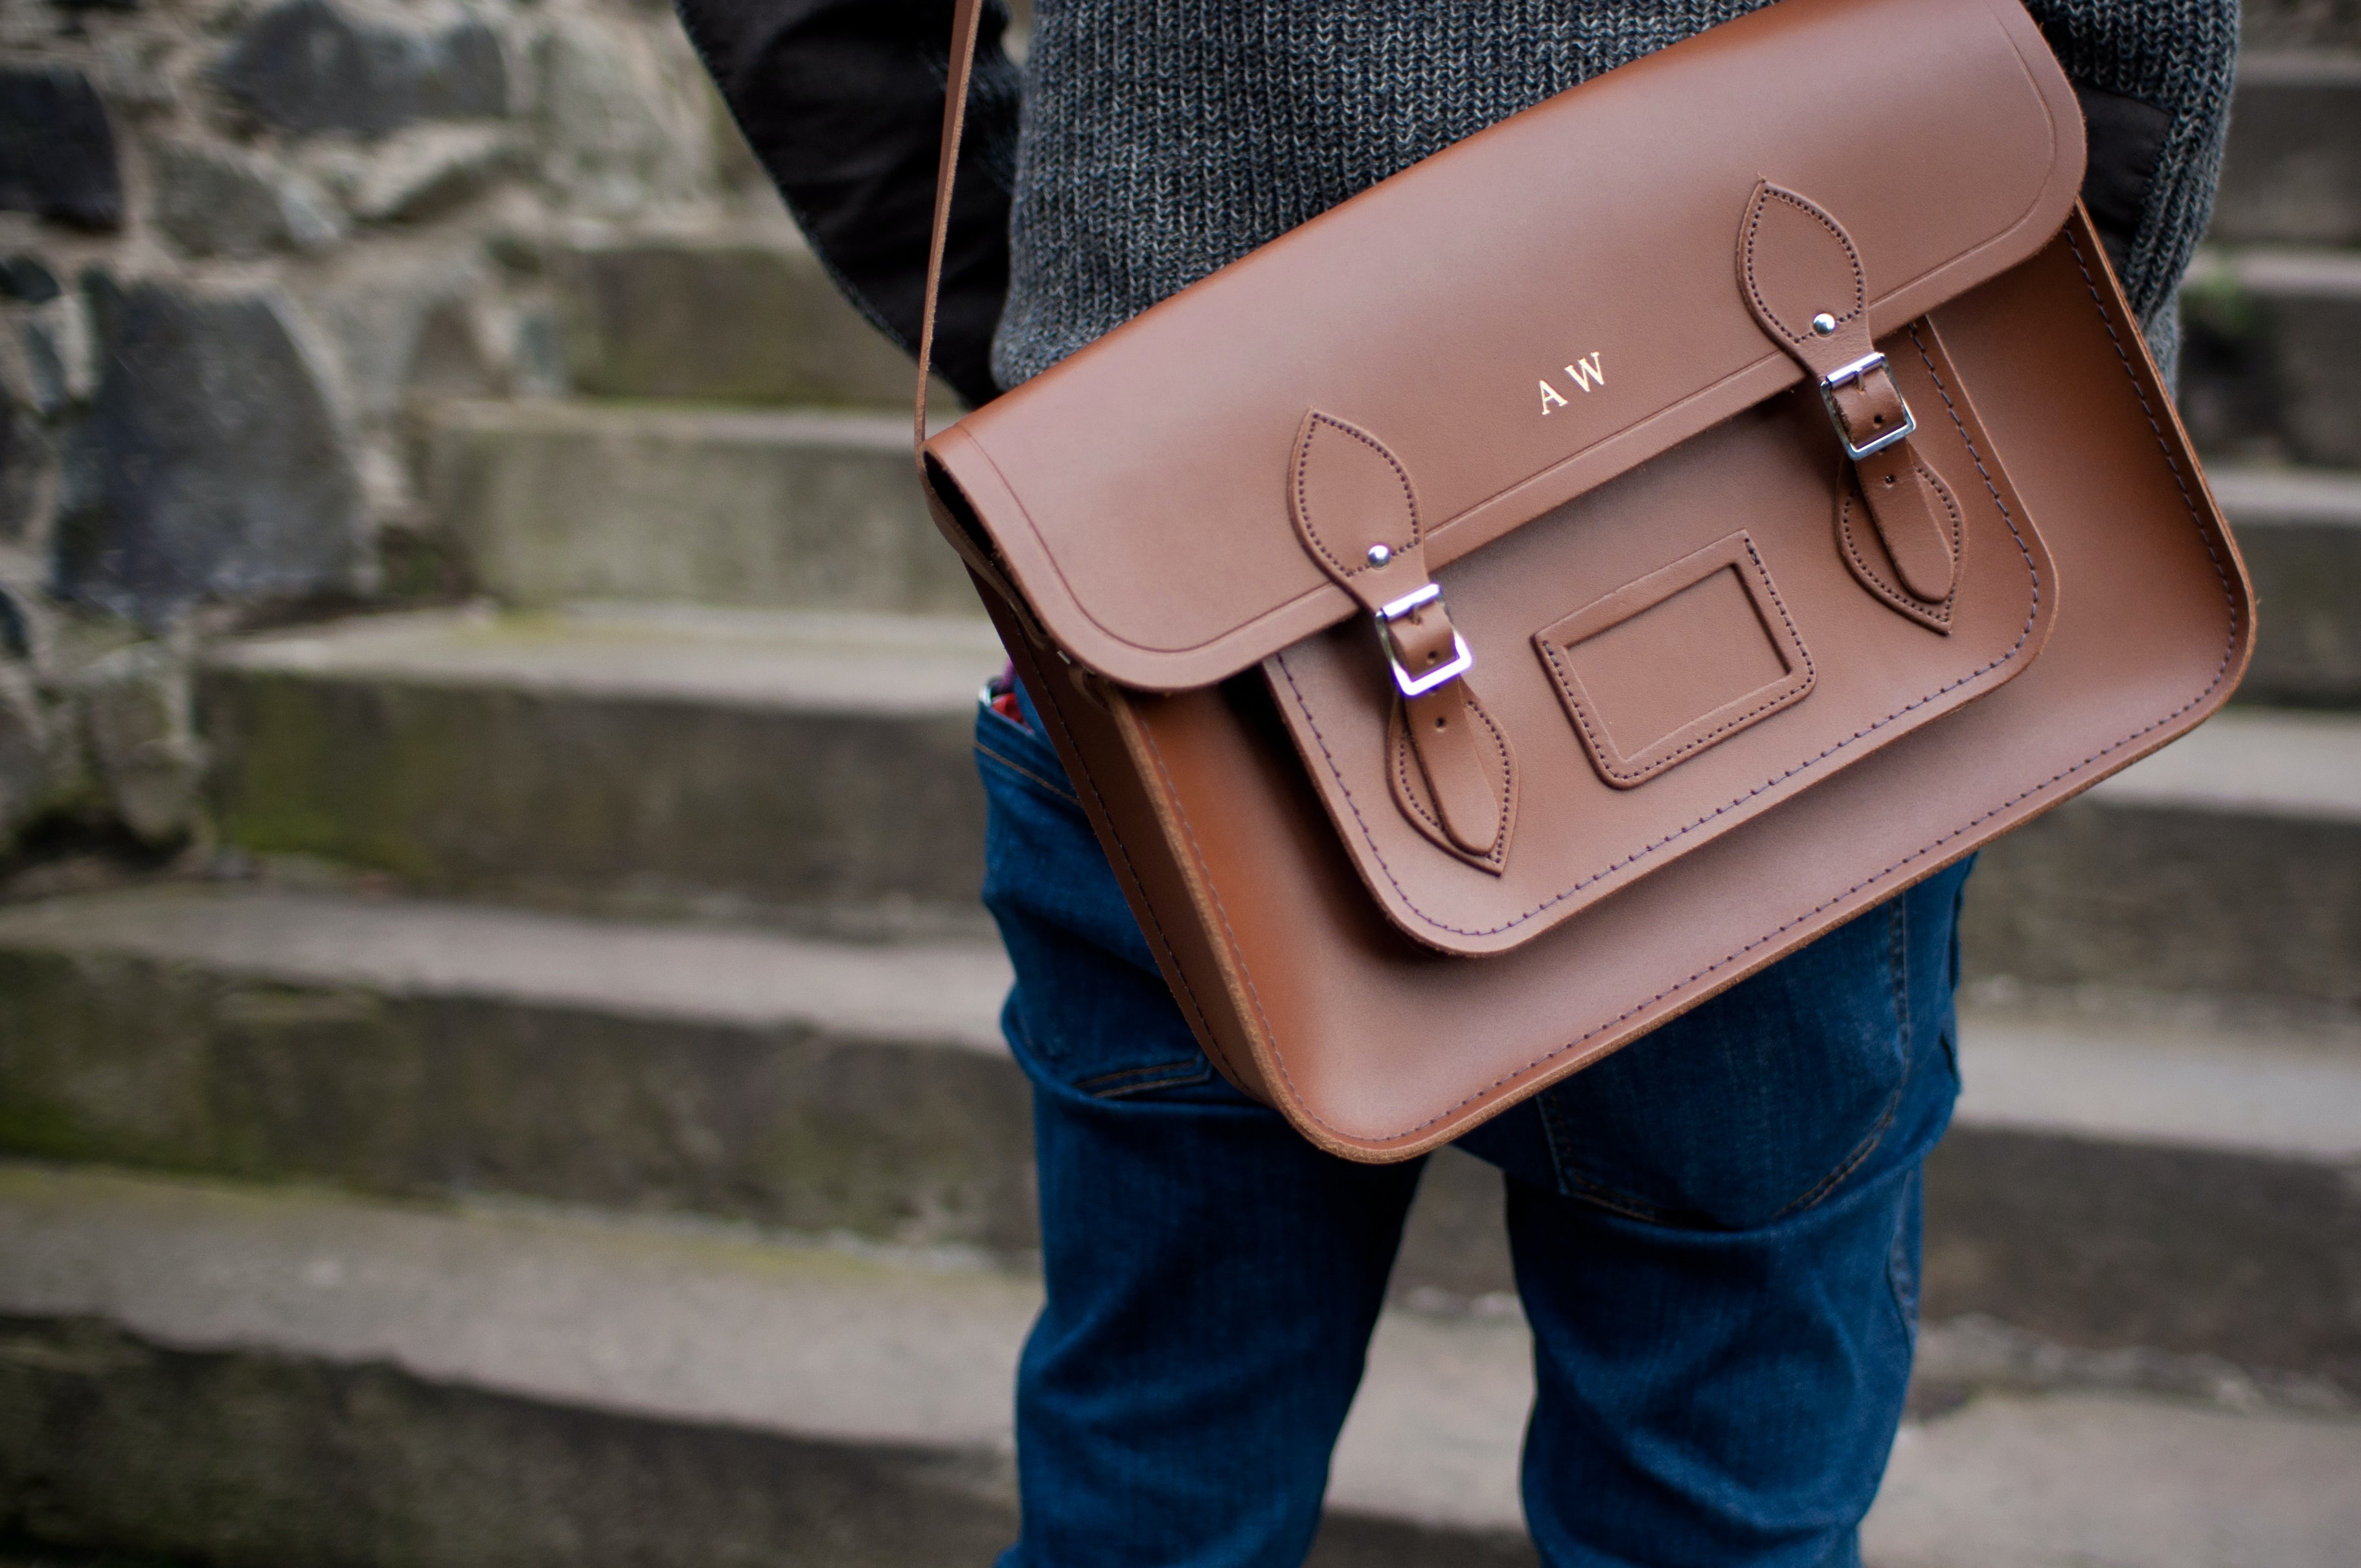 person carrying brown leather shoulder bag